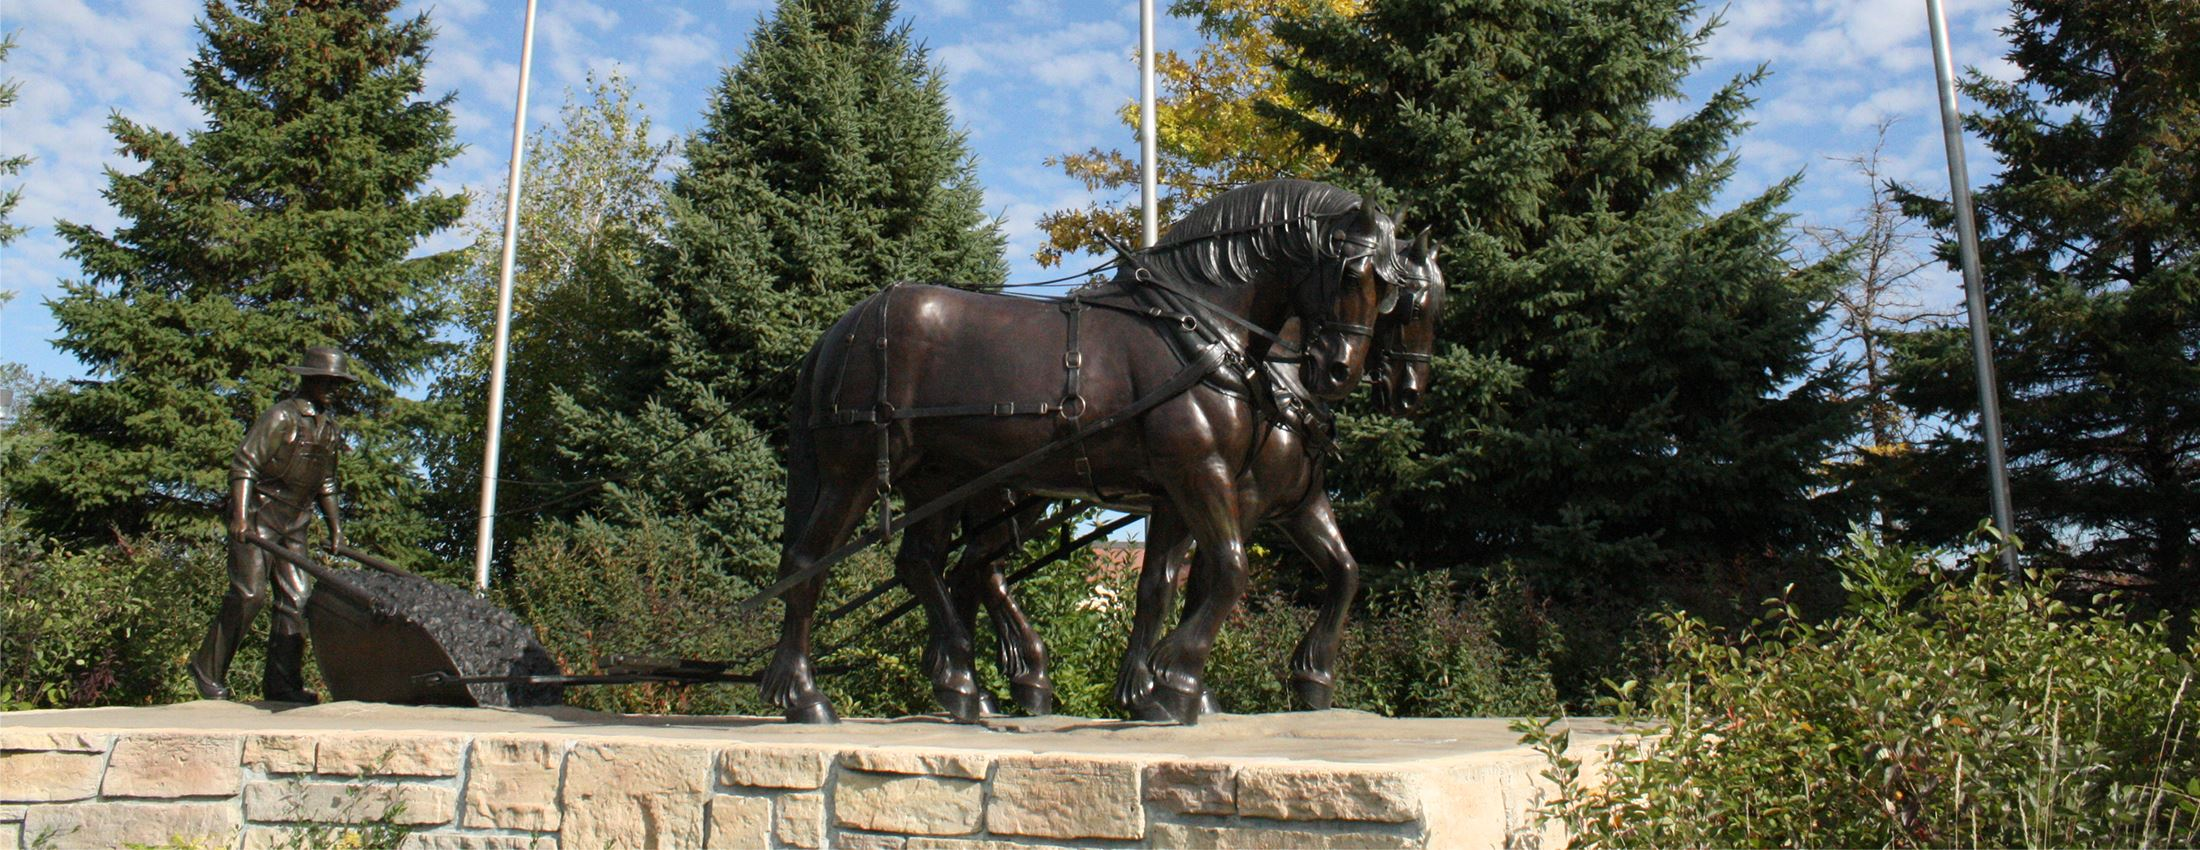 Sculpture of horses pulling and a man pushing a plow